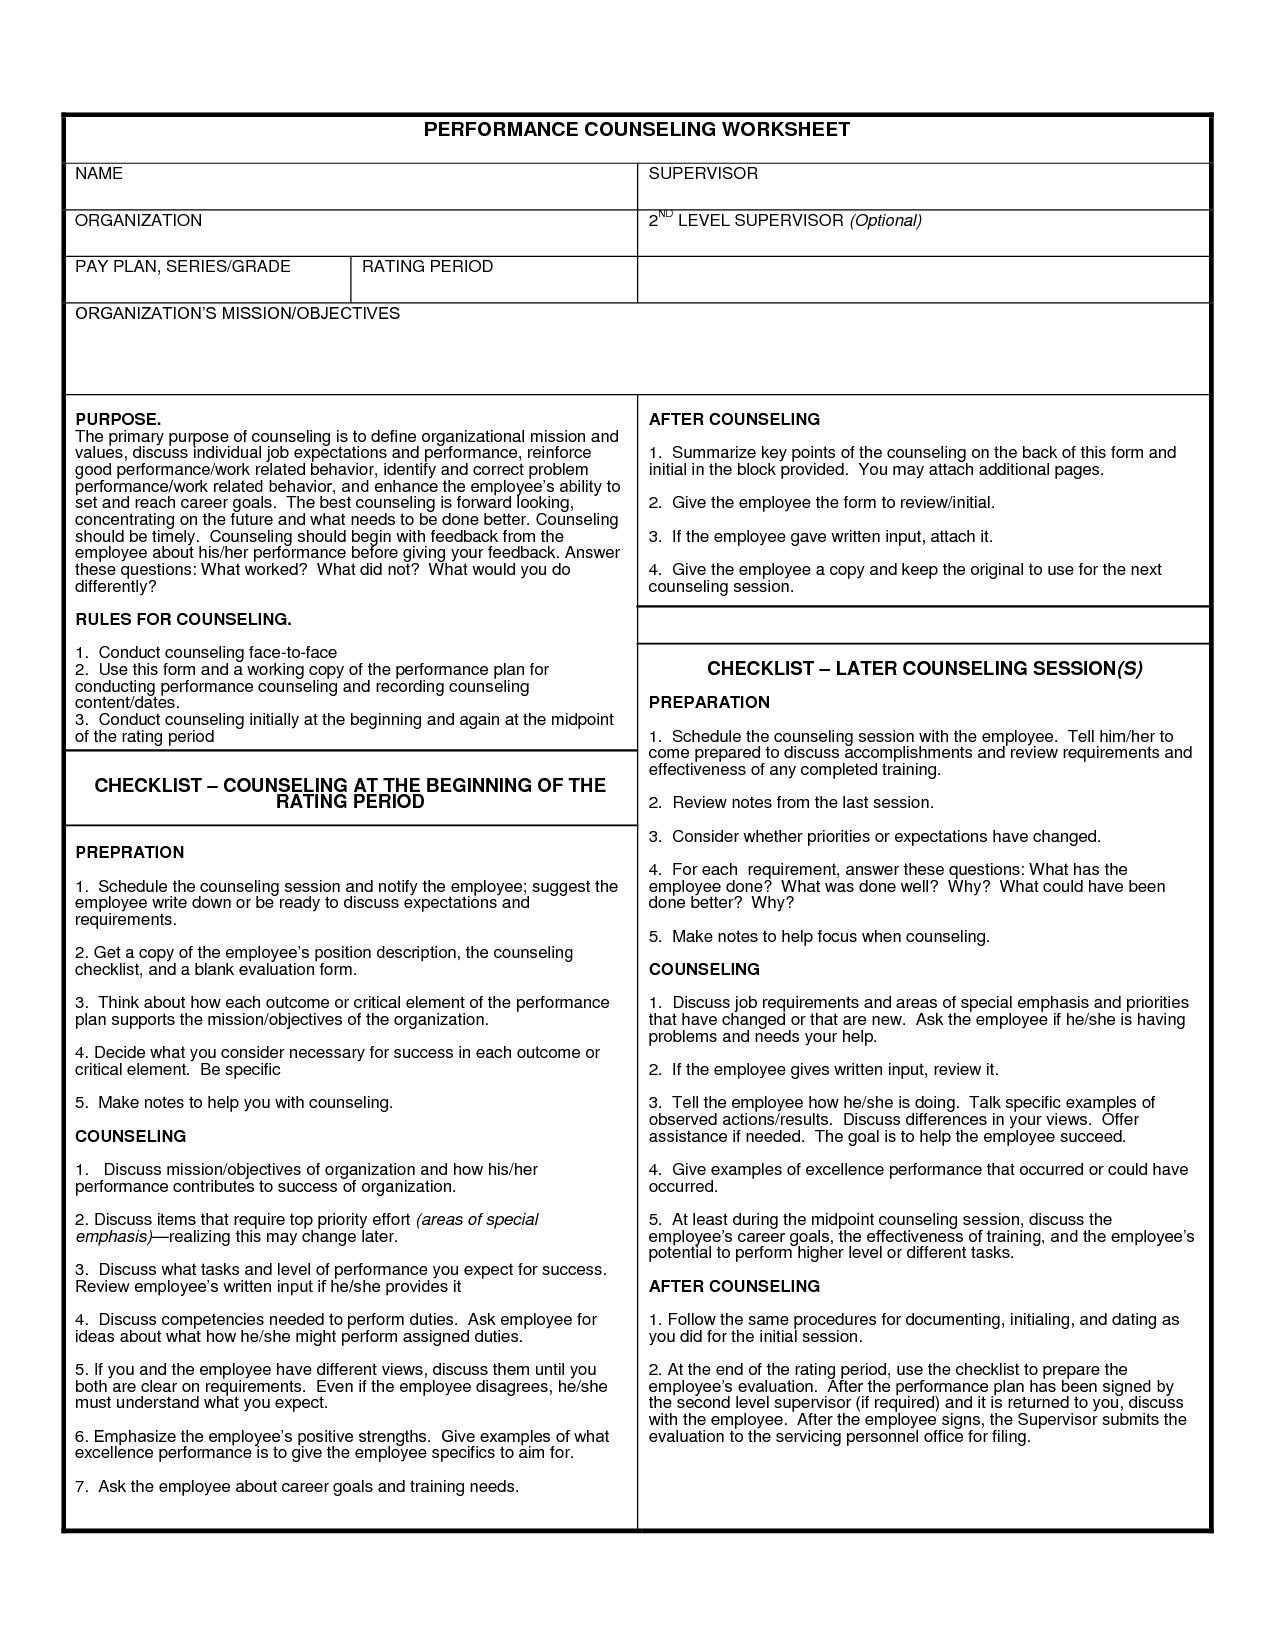 worksheet Counseling Worksheet Usmc da form 4856world of forms world counselor premier images career values worksheet marine corps